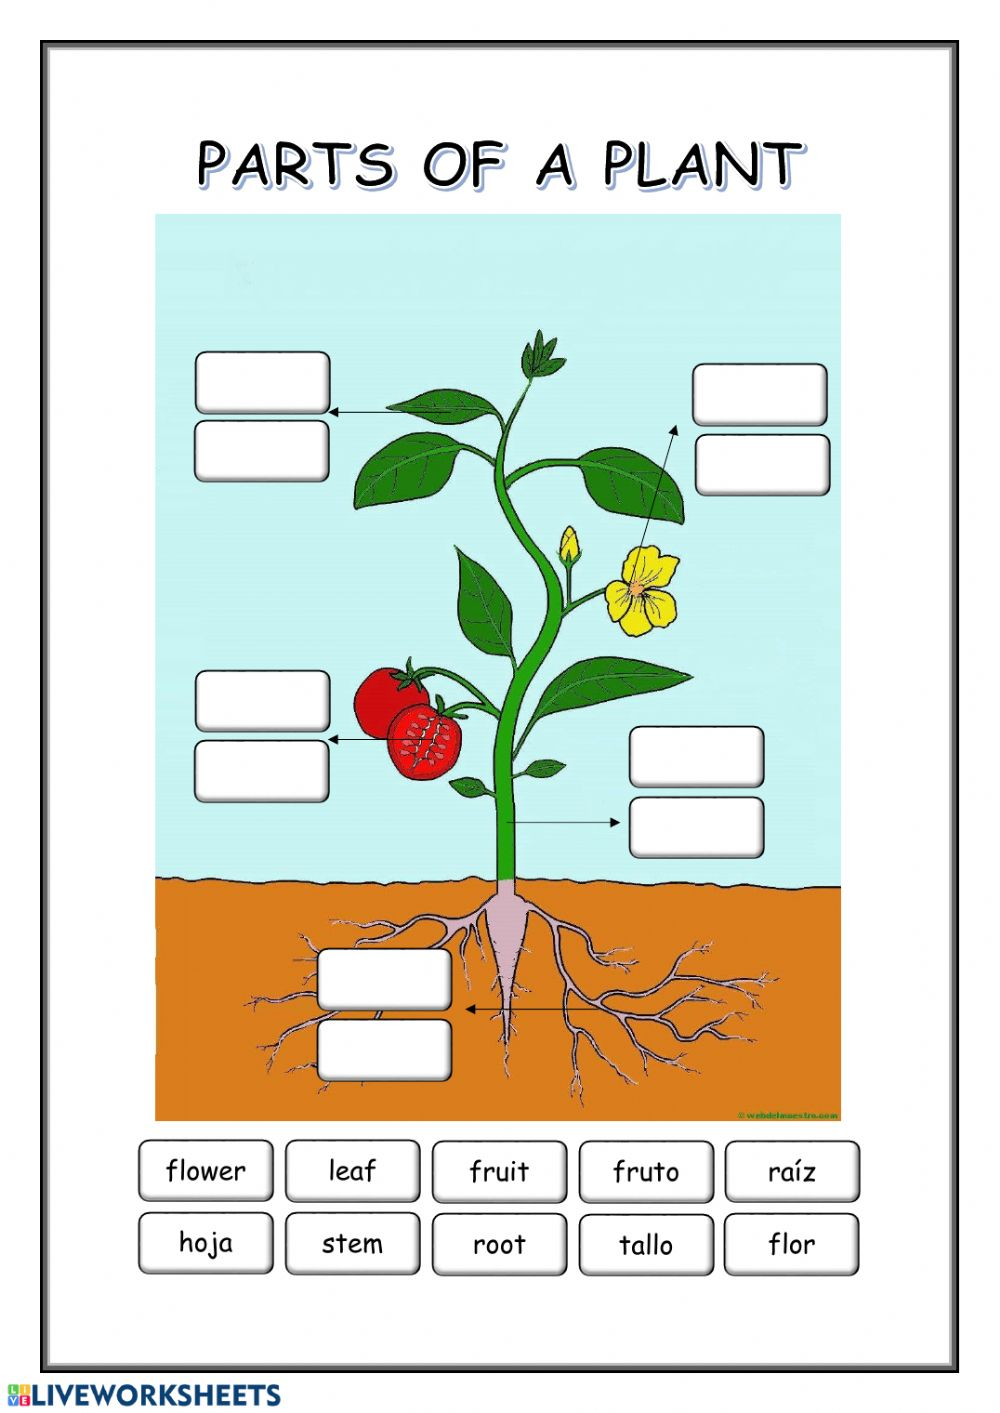 Parts of a plant interactive worksheet